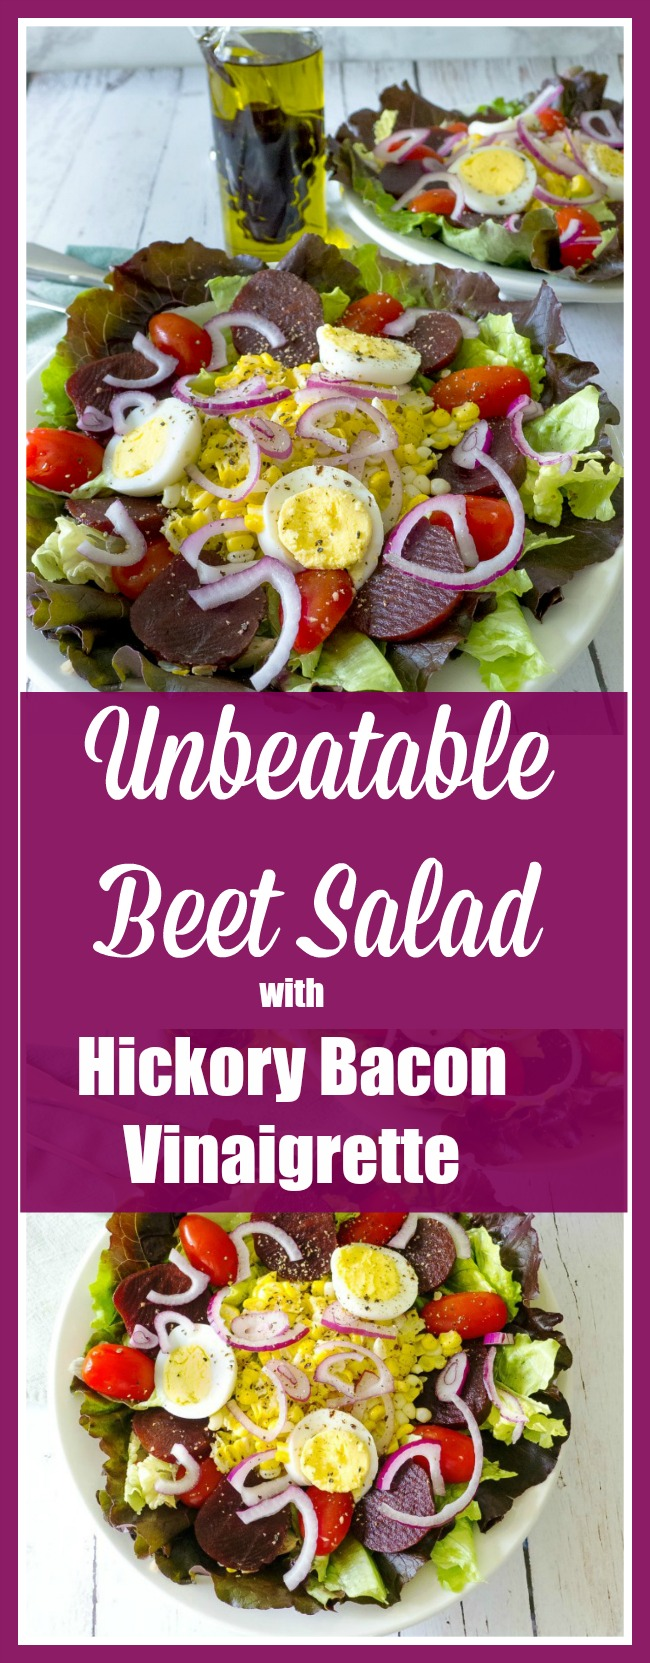 Unbeatable Beet Salad with Hickory Bacon Vinaigrette includes grilled corn, radishes, purple onions served on a lettuce bed and dressed with a hickory bacon vinaigrette @allourway.com